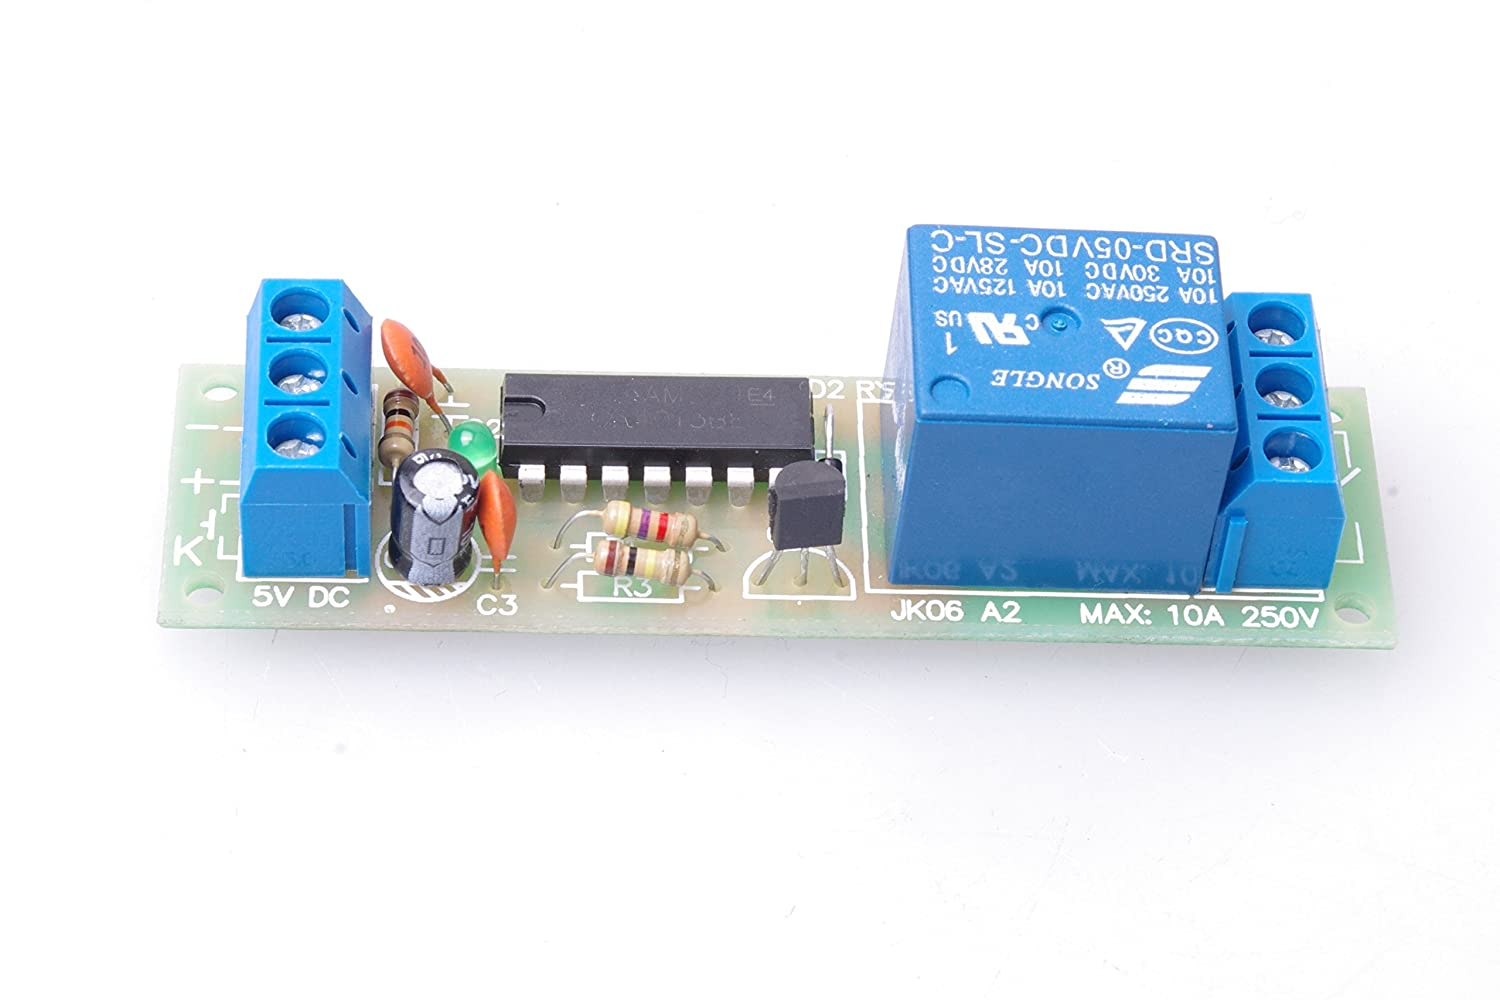 Smakn Dc 5v High Level Trigger Switch Latching Relay Relay3pdt Schematiclatched Relay4pdt Schematicrelays Module 10a Load Can Be Controlled Home Audio Theater